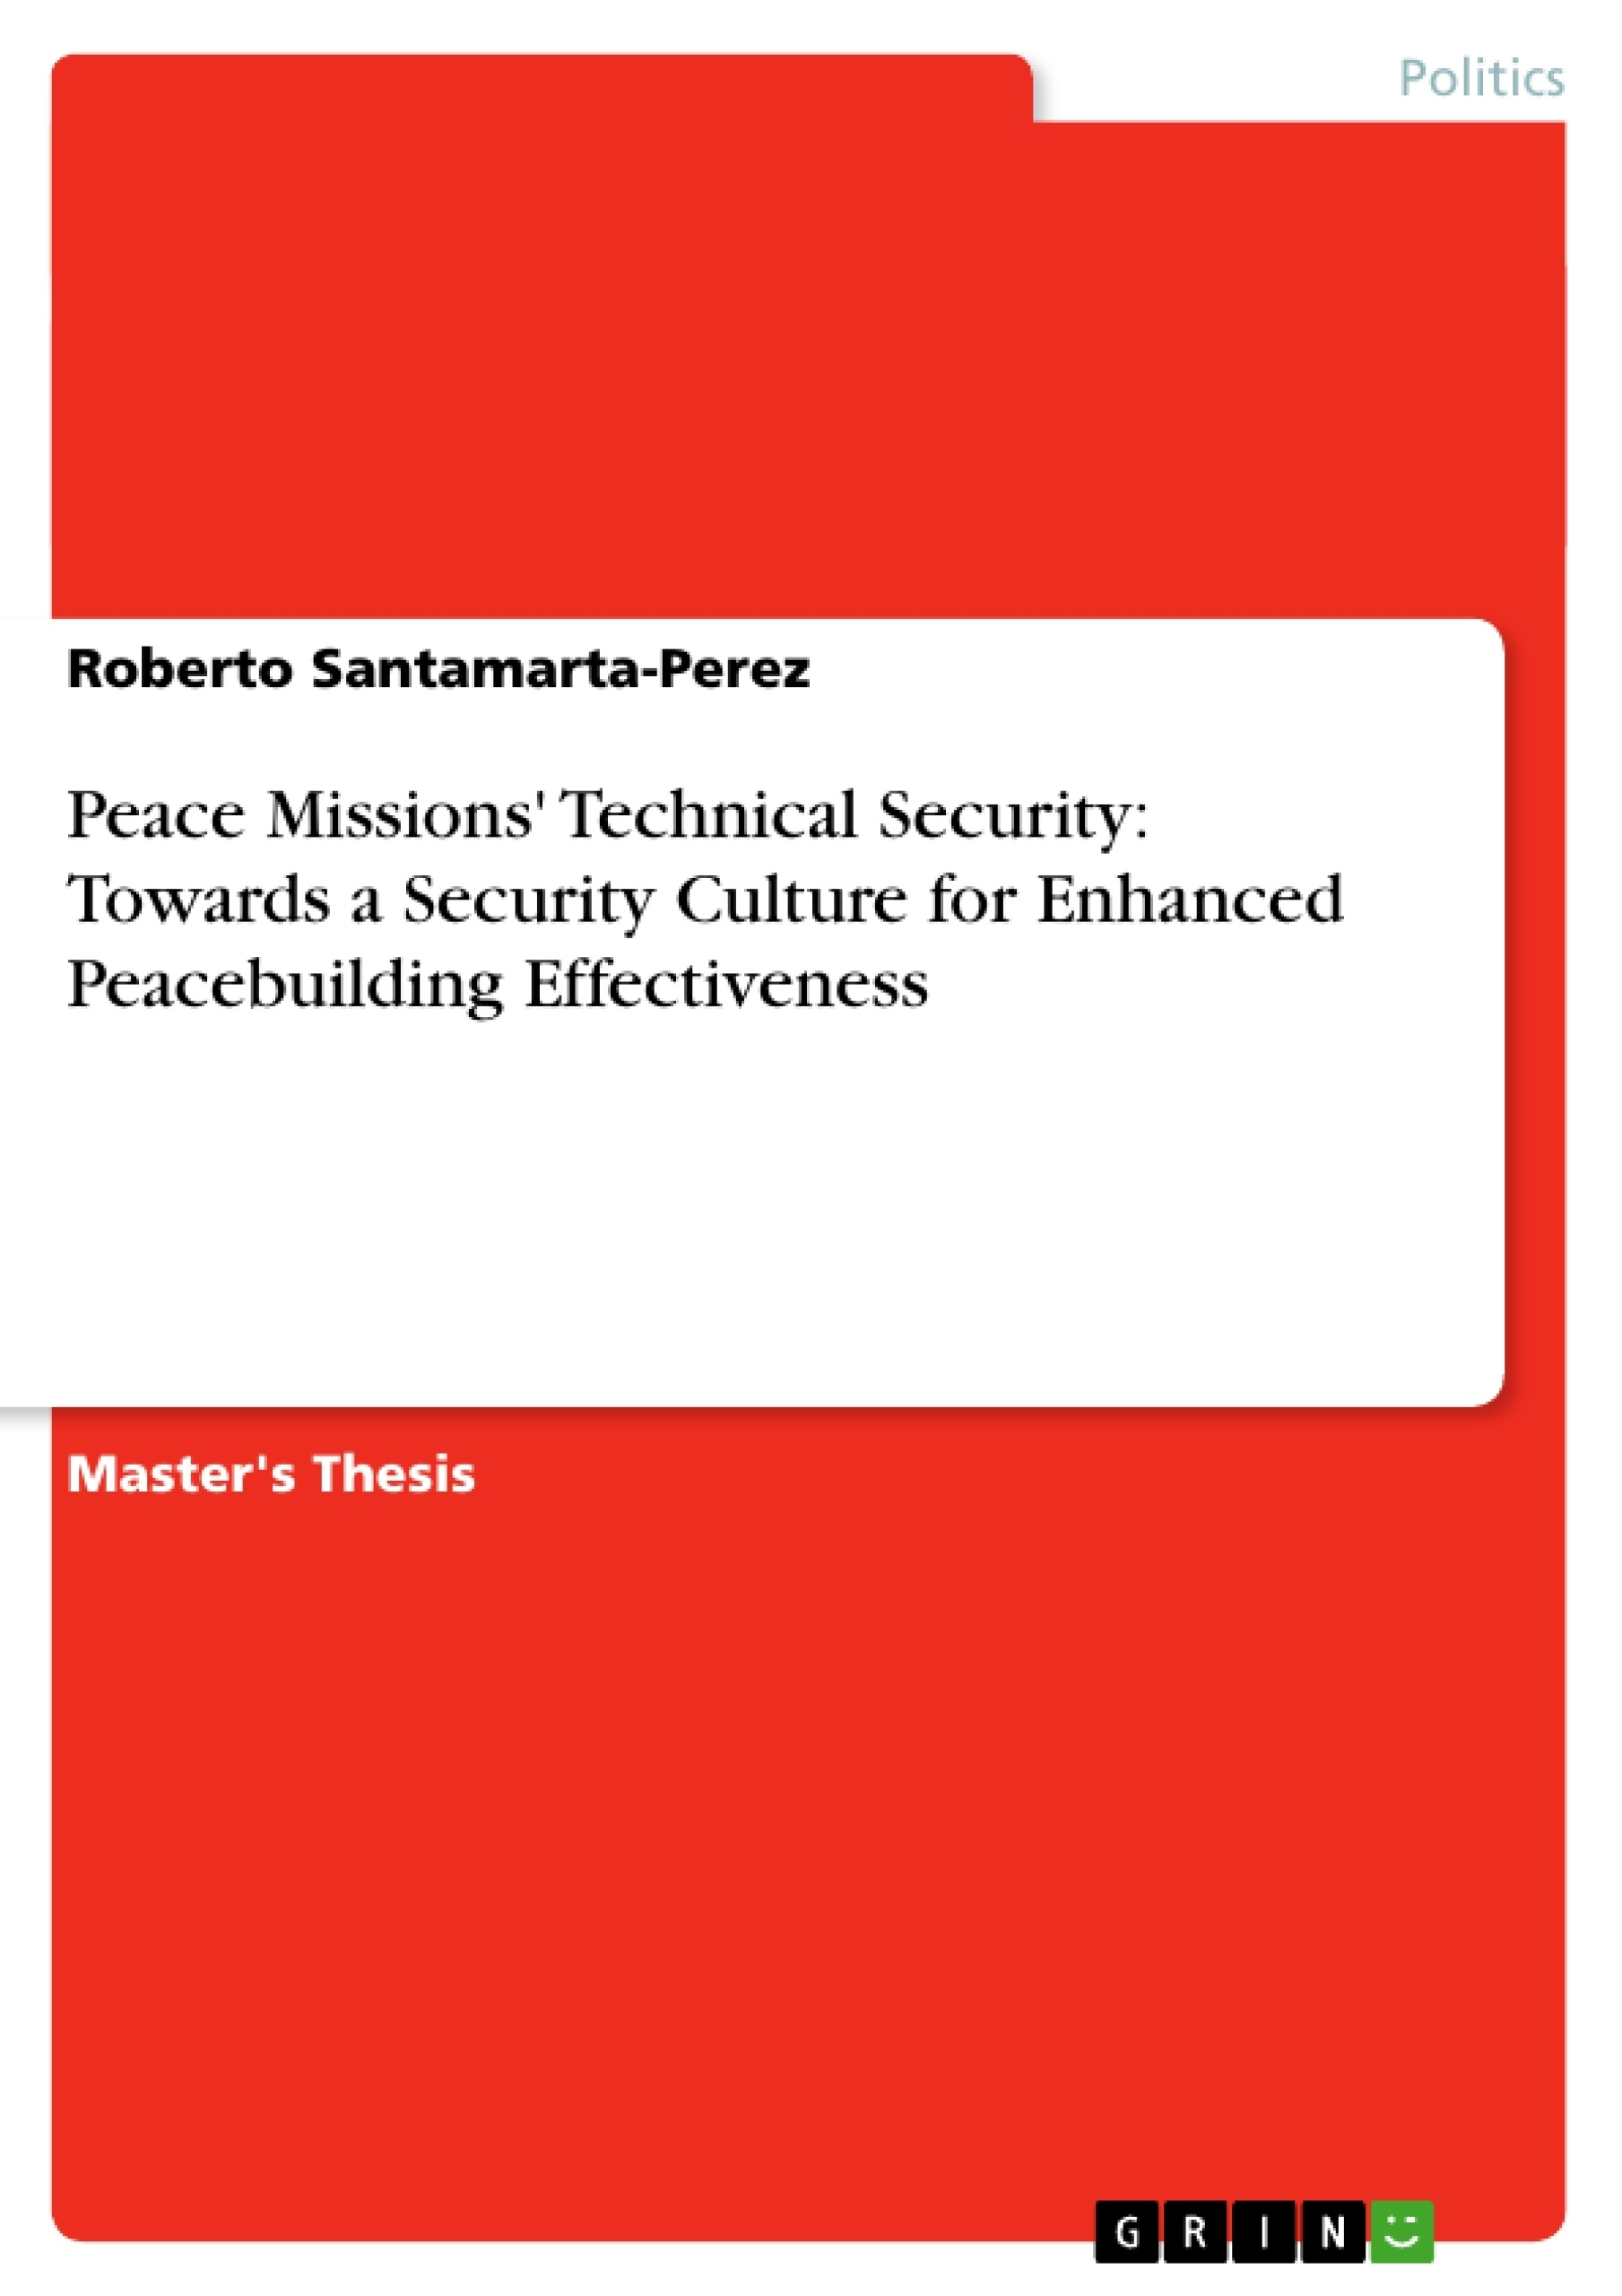 Title: Peace Missions' Technical Security: Towards a Security Culture for Enhanced Peacebuilding Effectiveness